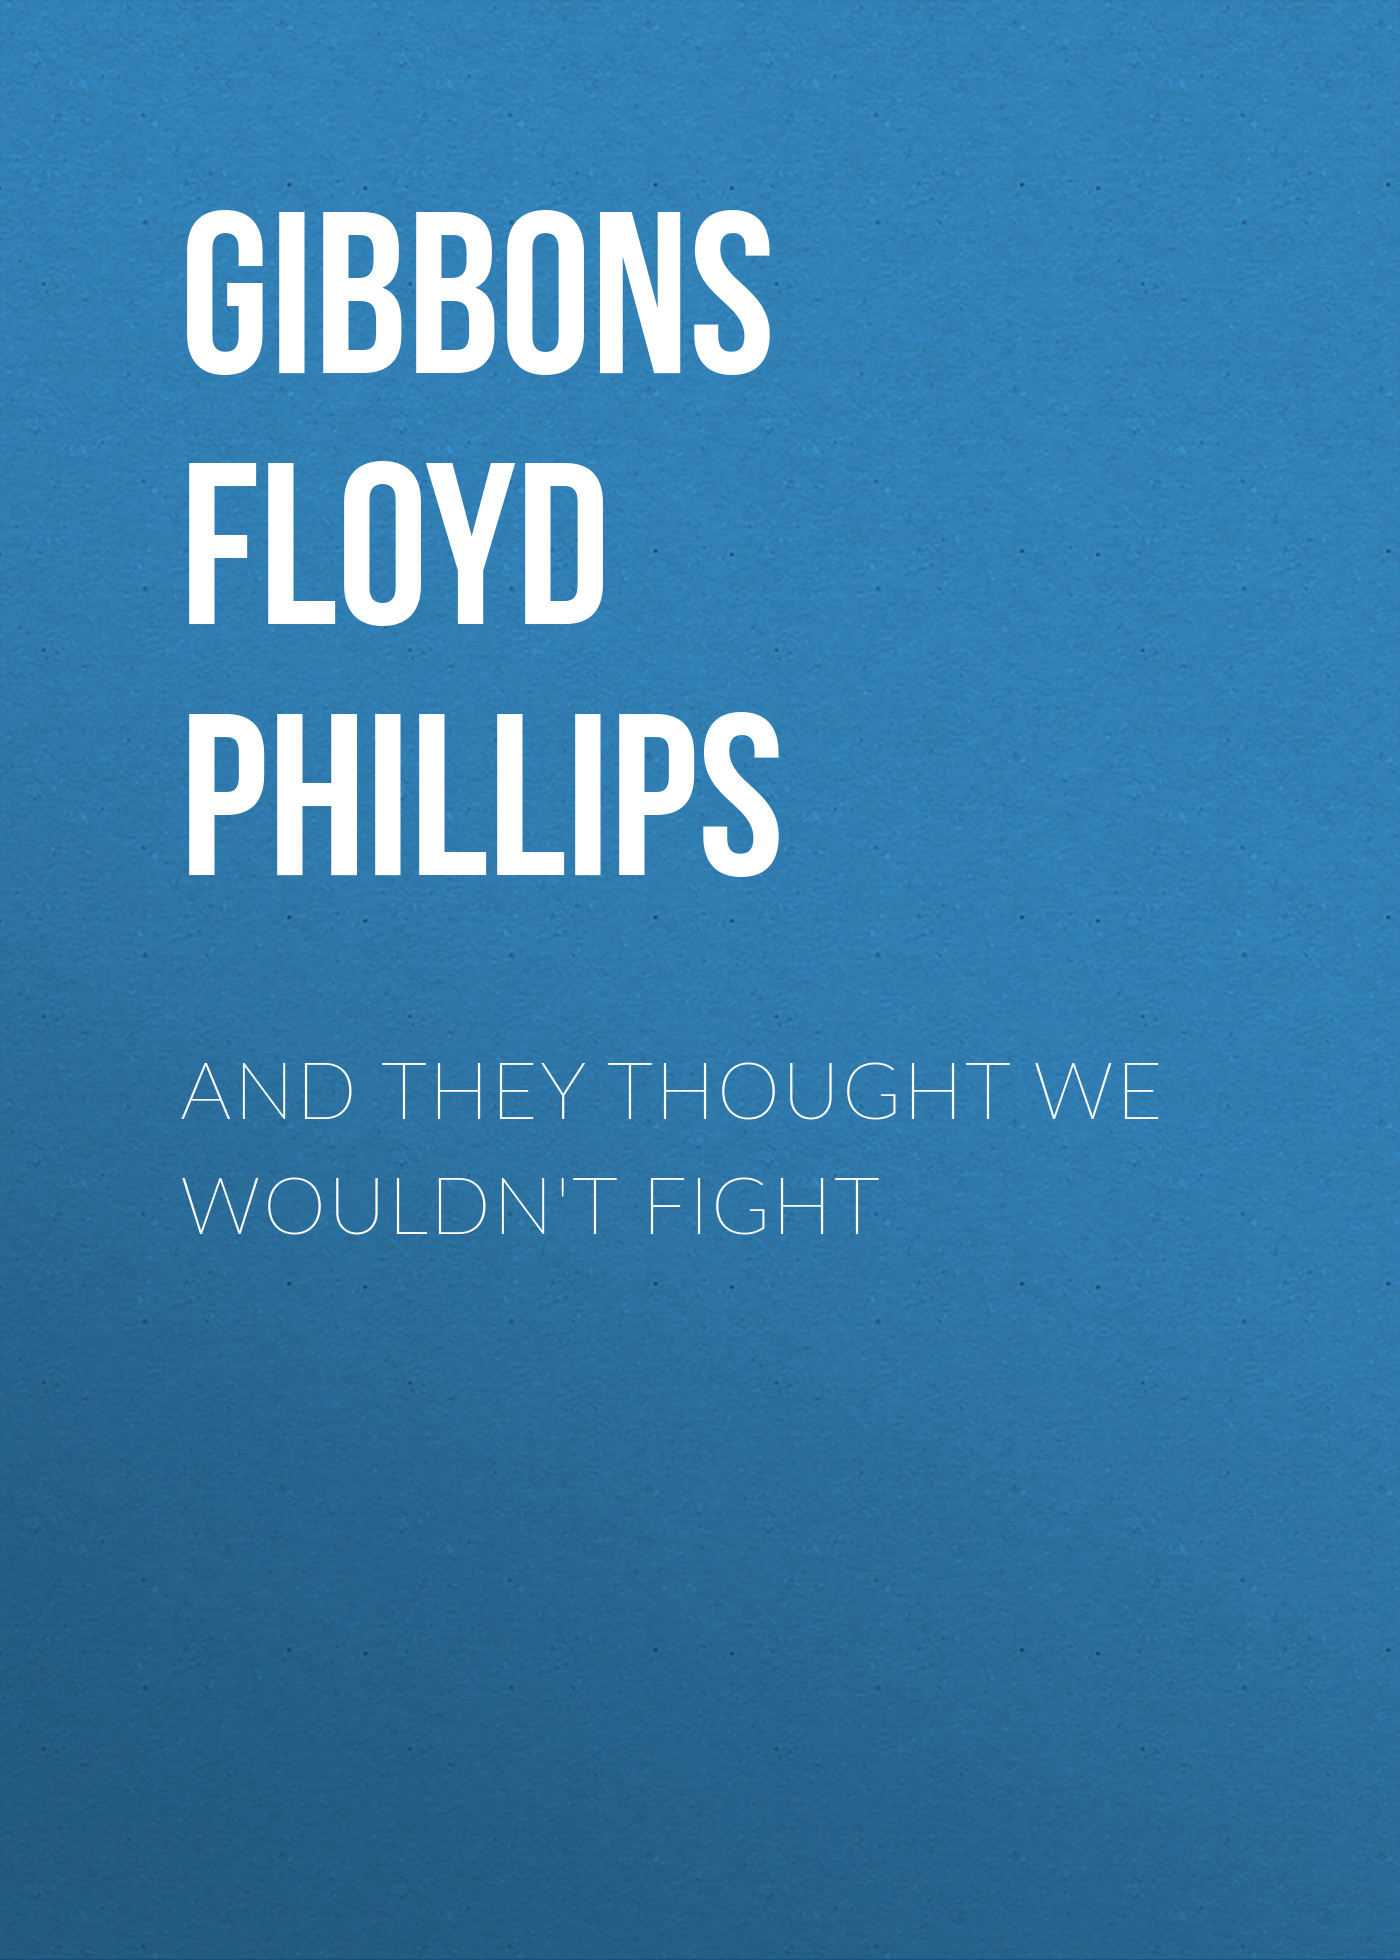 цена на Gibbons Floyd Phillips And they thought we wouldn't fight